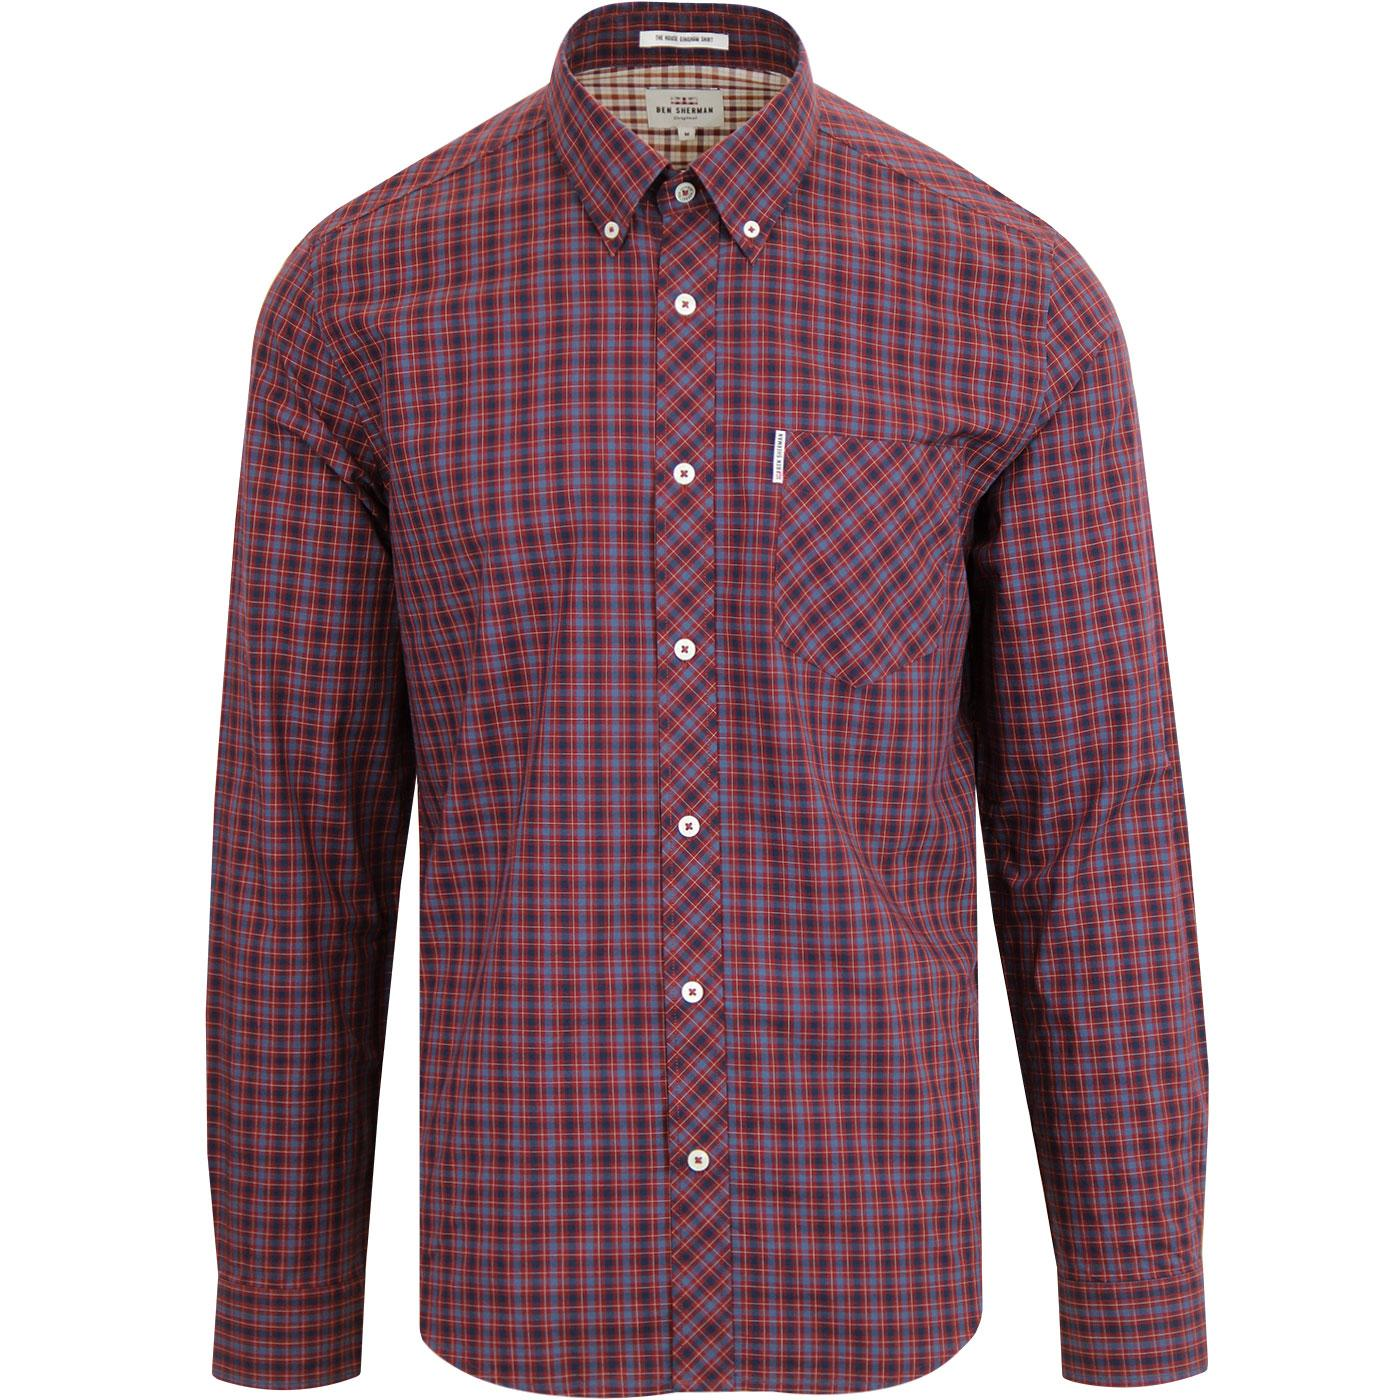 BEN SHERMAN Men's Retro Mod House Check Shirt RUST